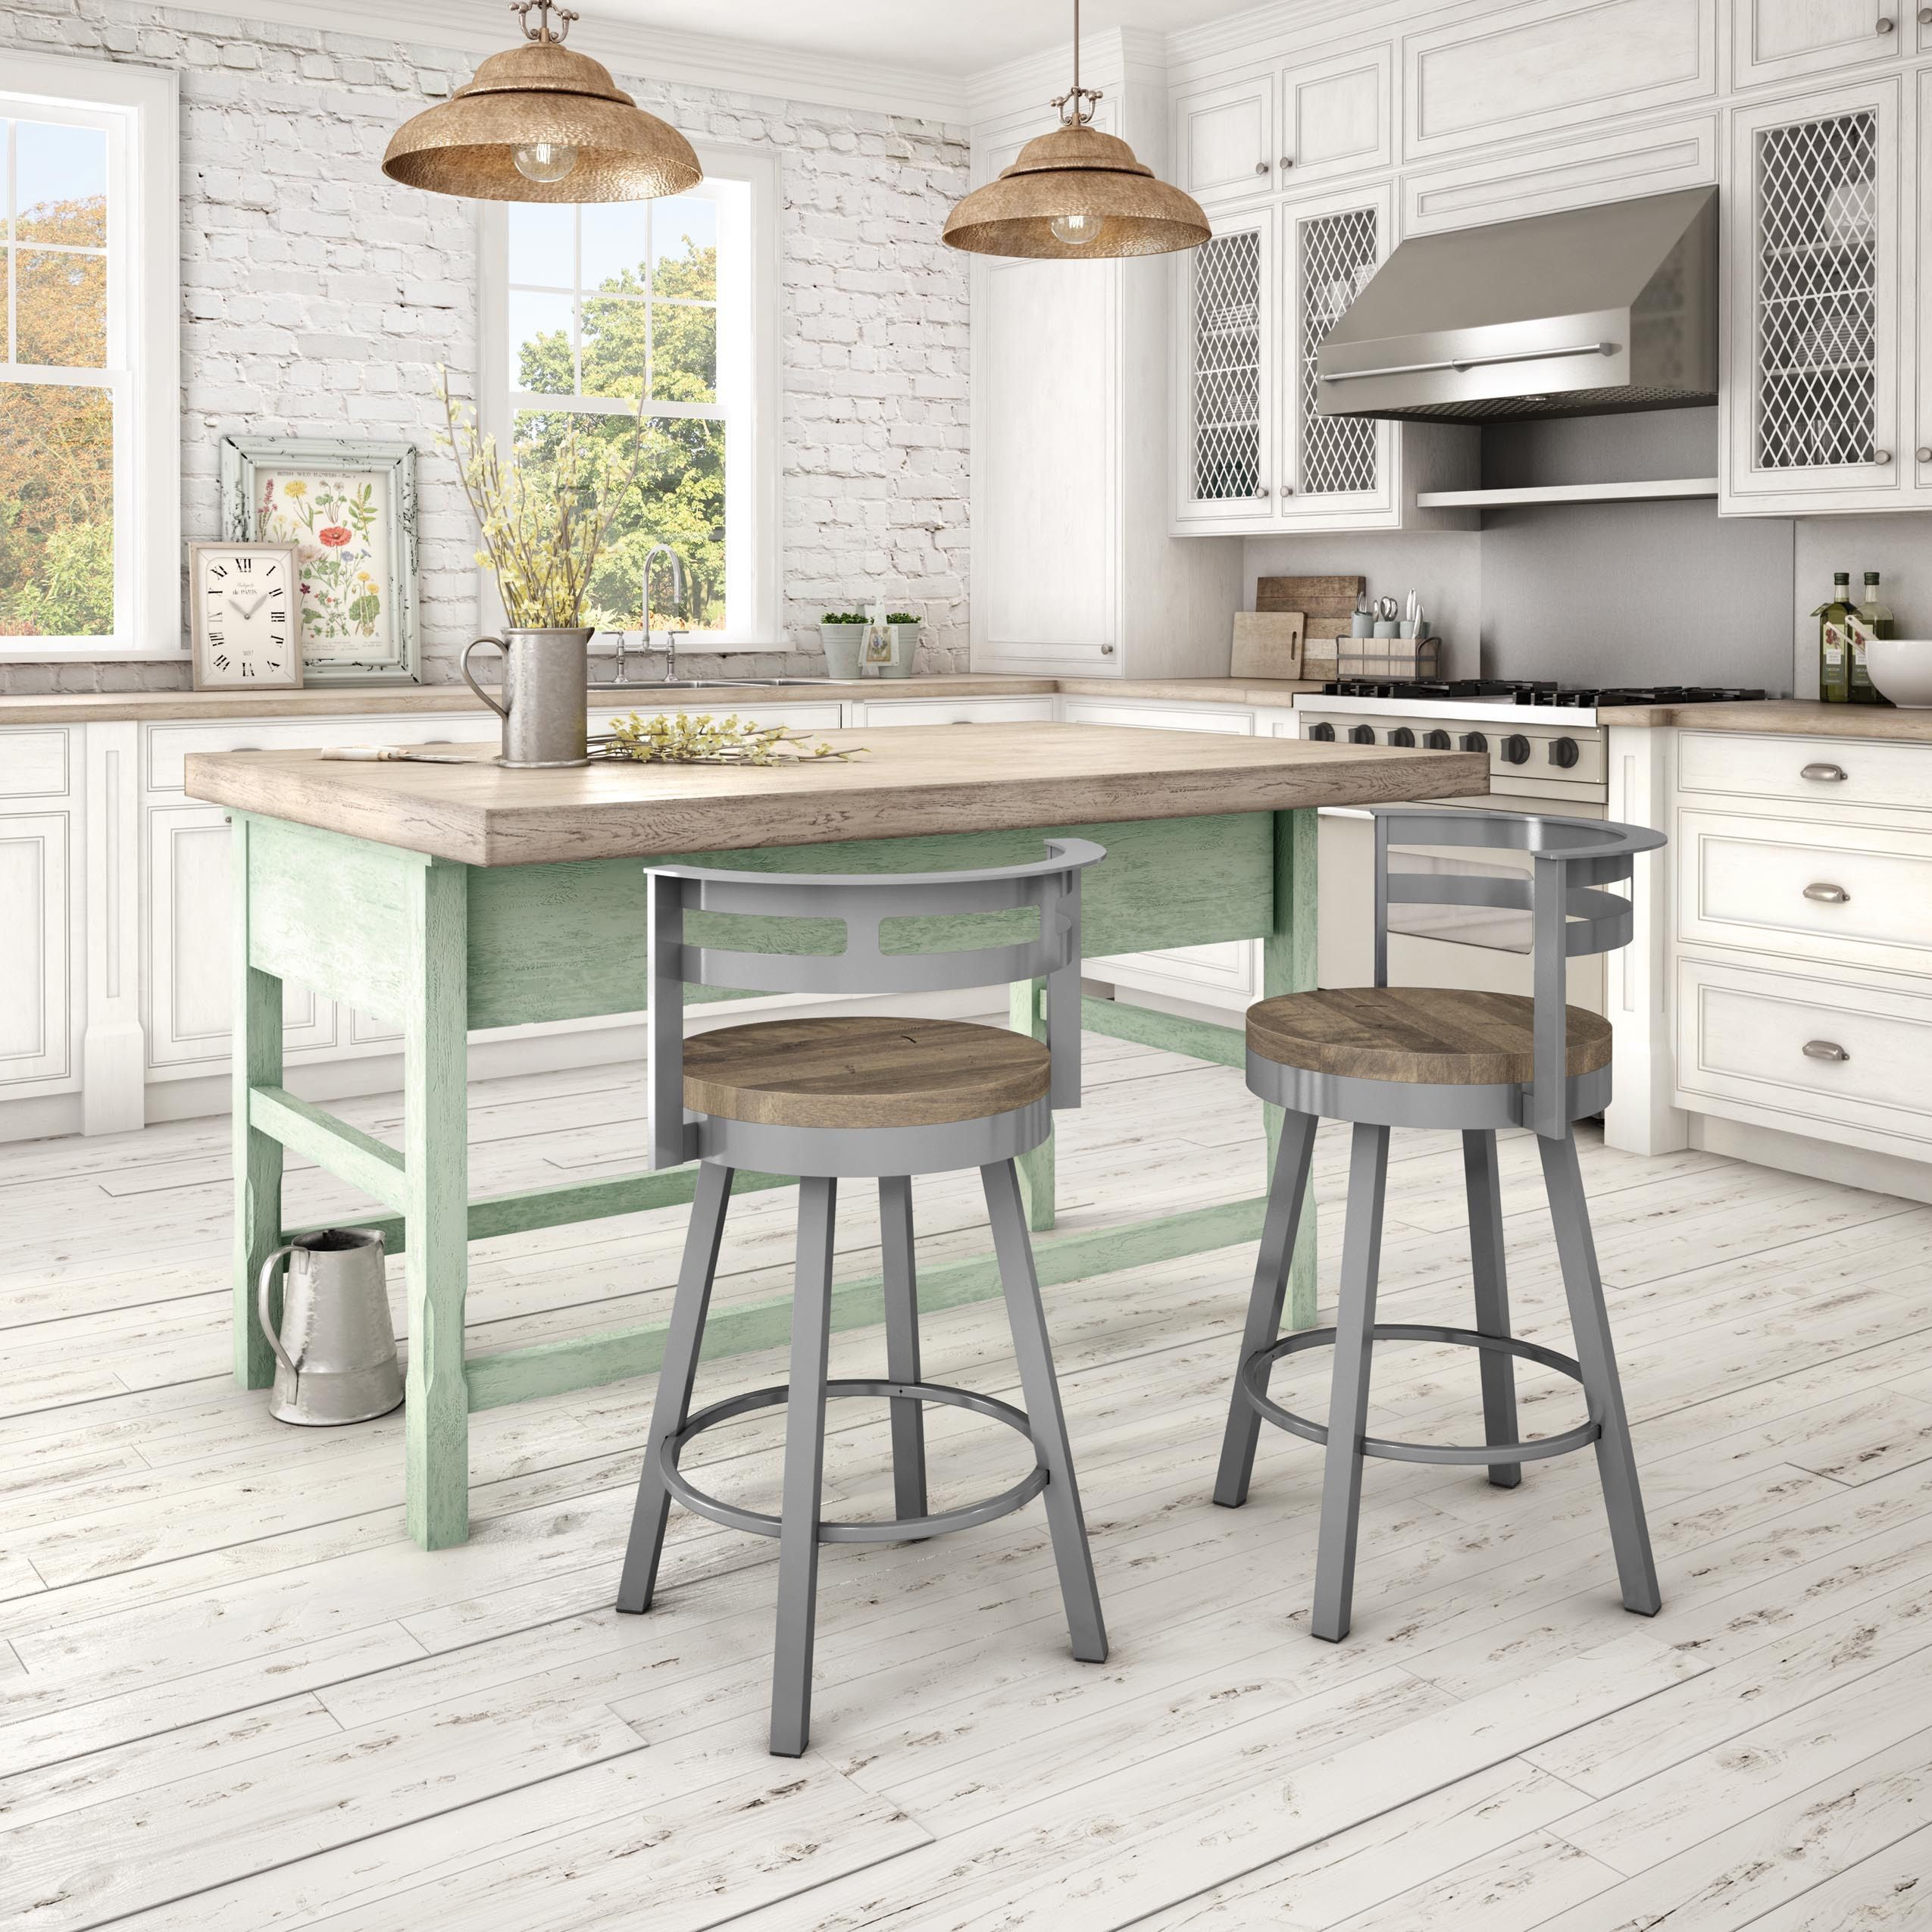 Awesome Bar Stools for Kitchen